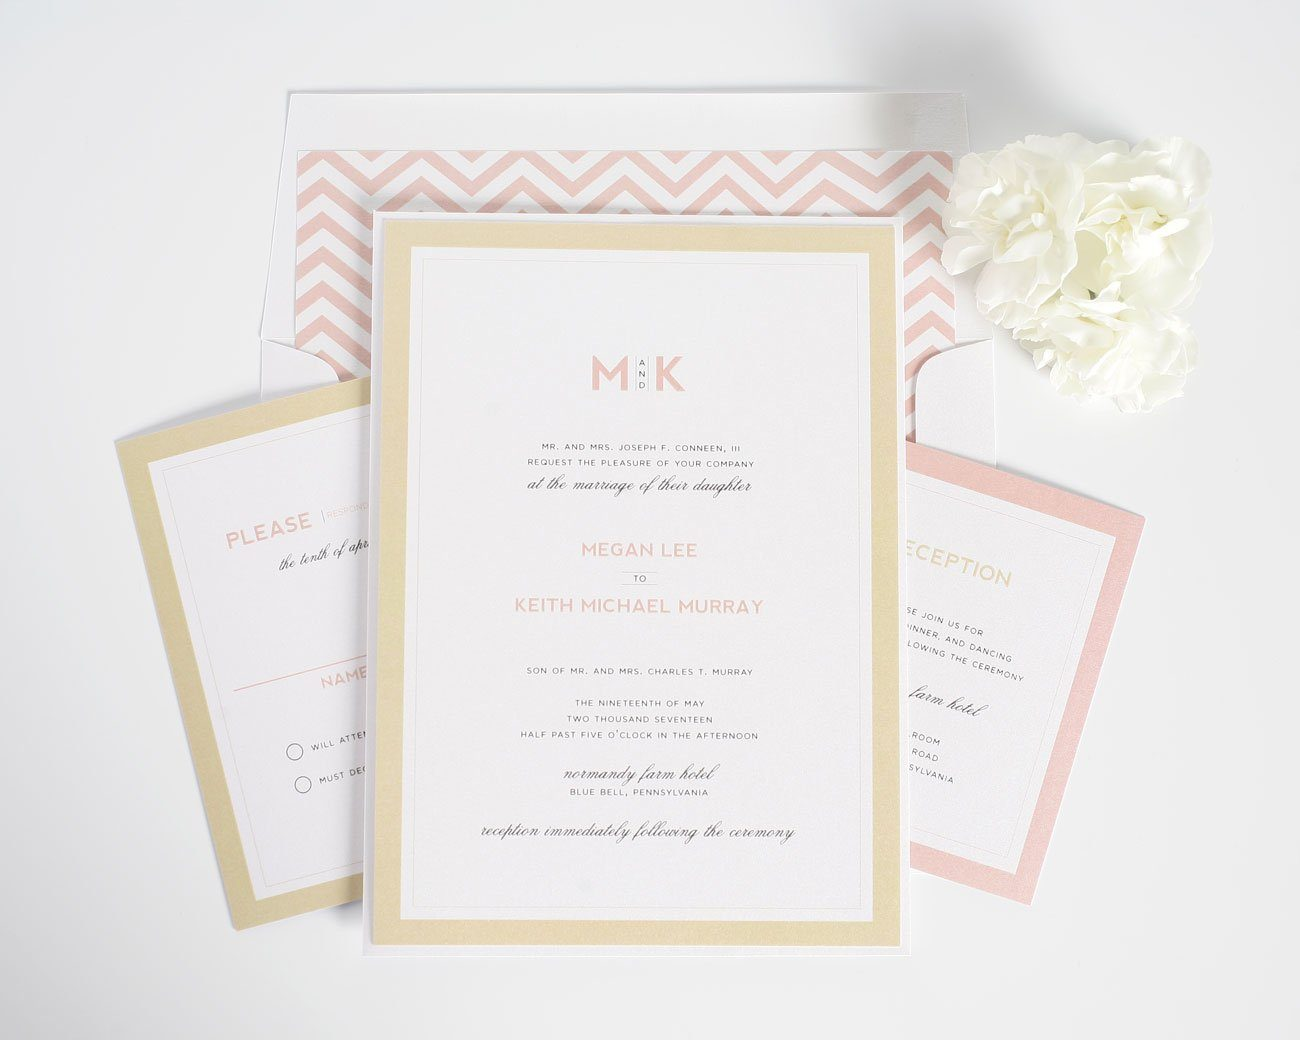 Blush and Gold Wedding Invitations with Chevron Pattern